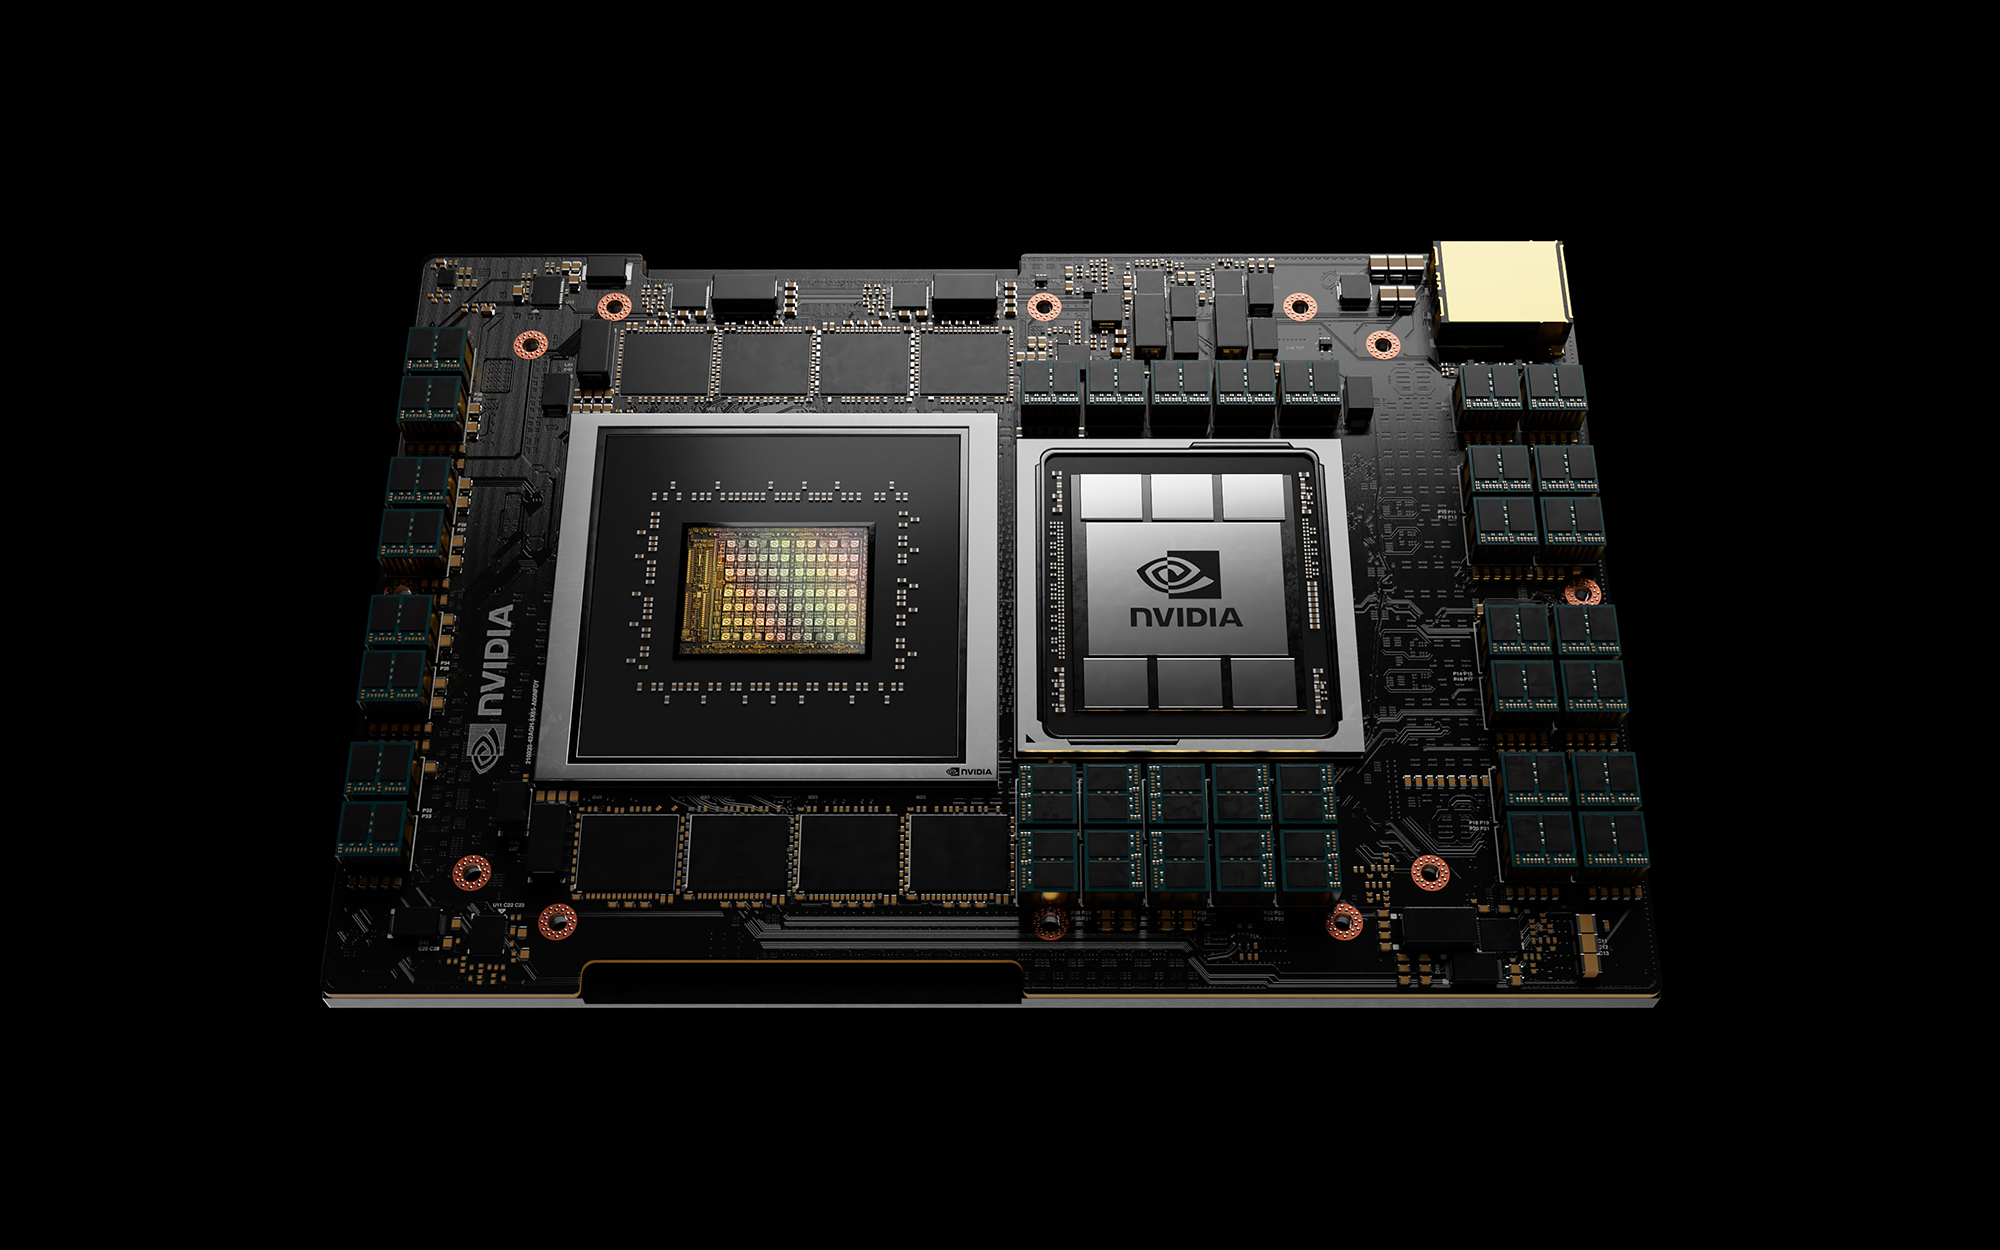 Nvidia bets on continued AI summer with new Grace processor and car chip